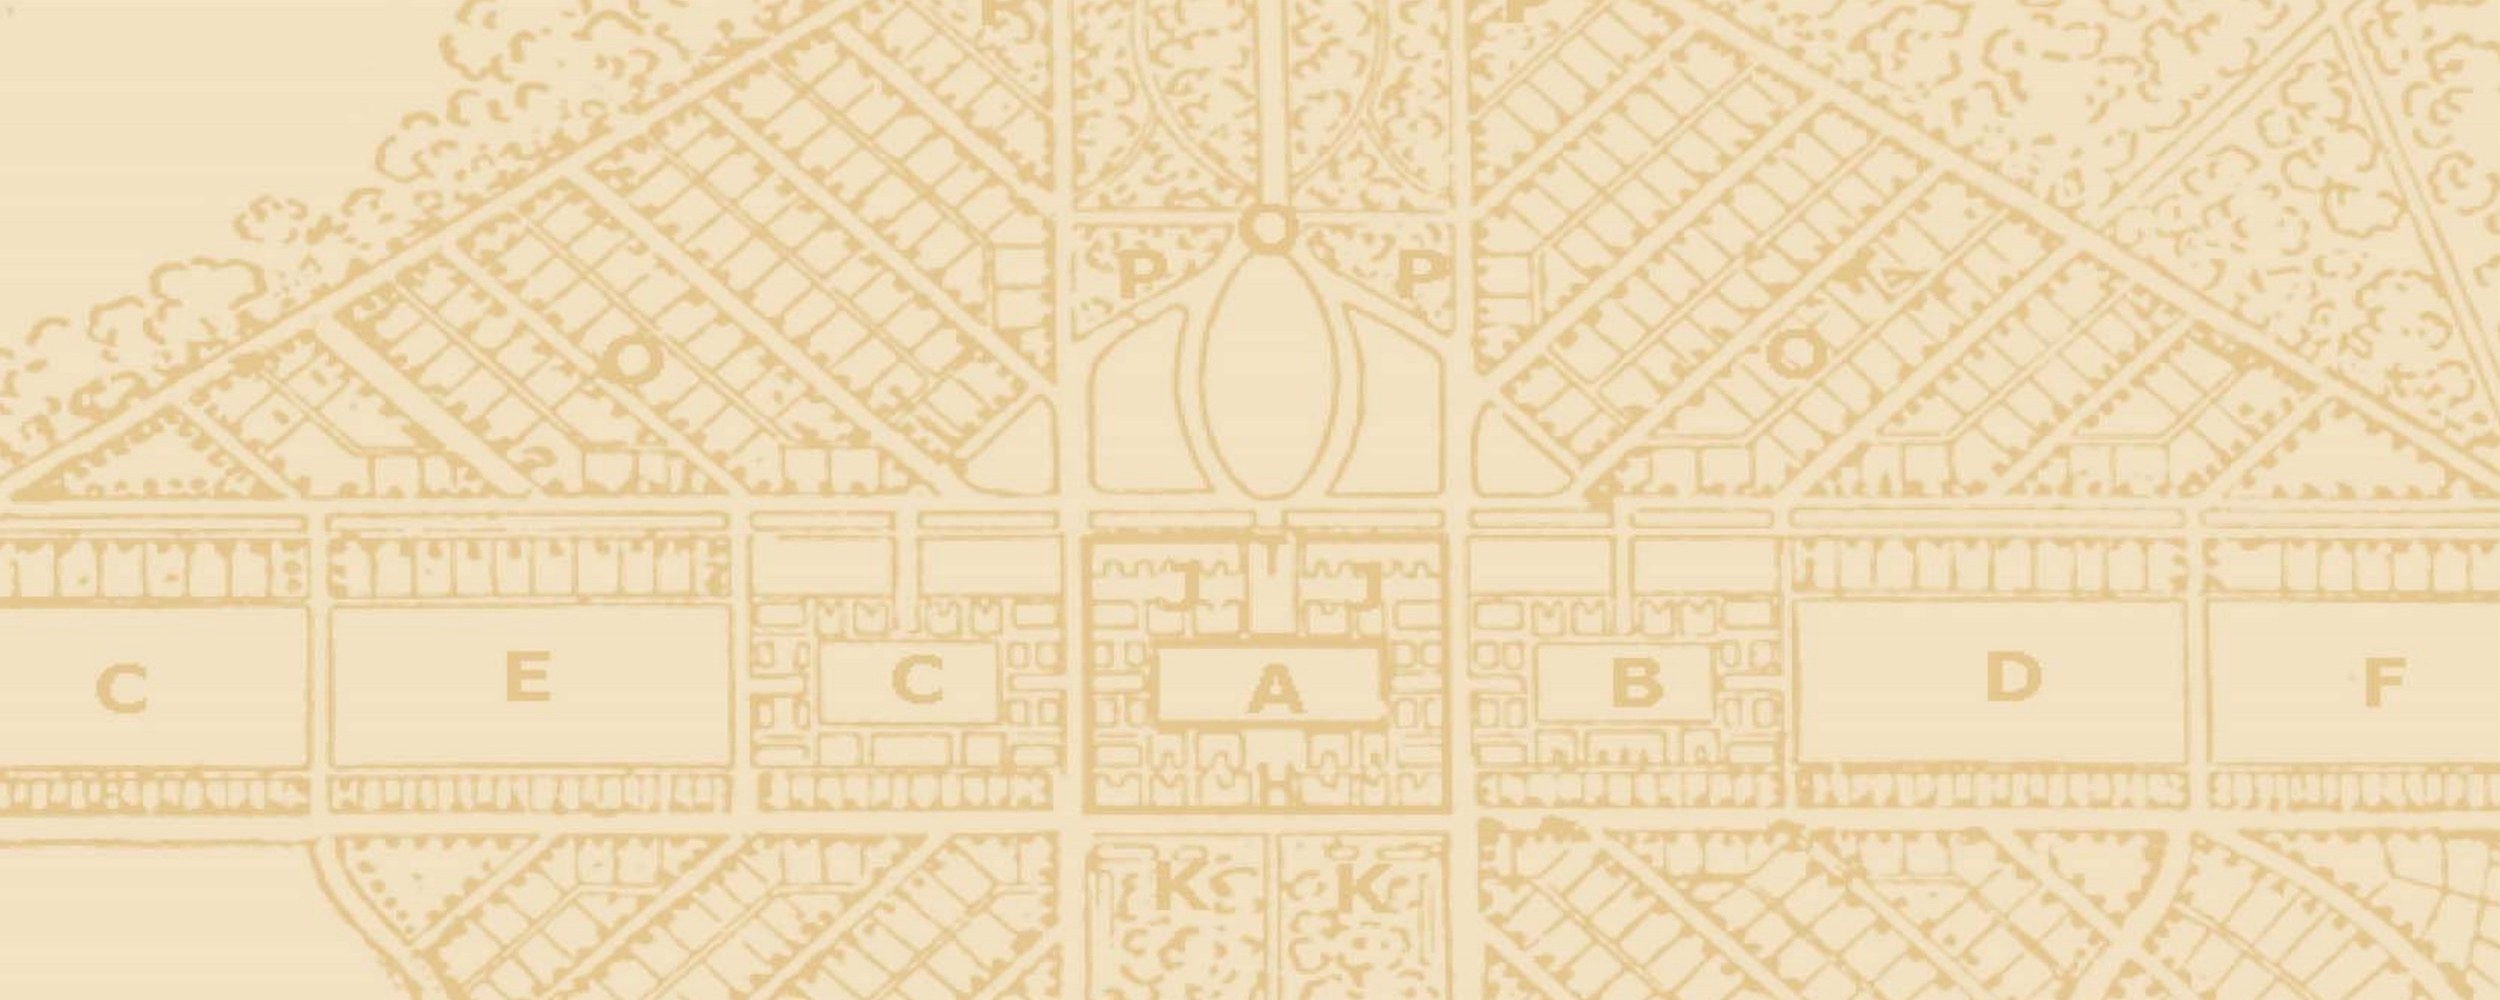 A portion of the 1888 Frederick Law Olmstead's master plan for the campus